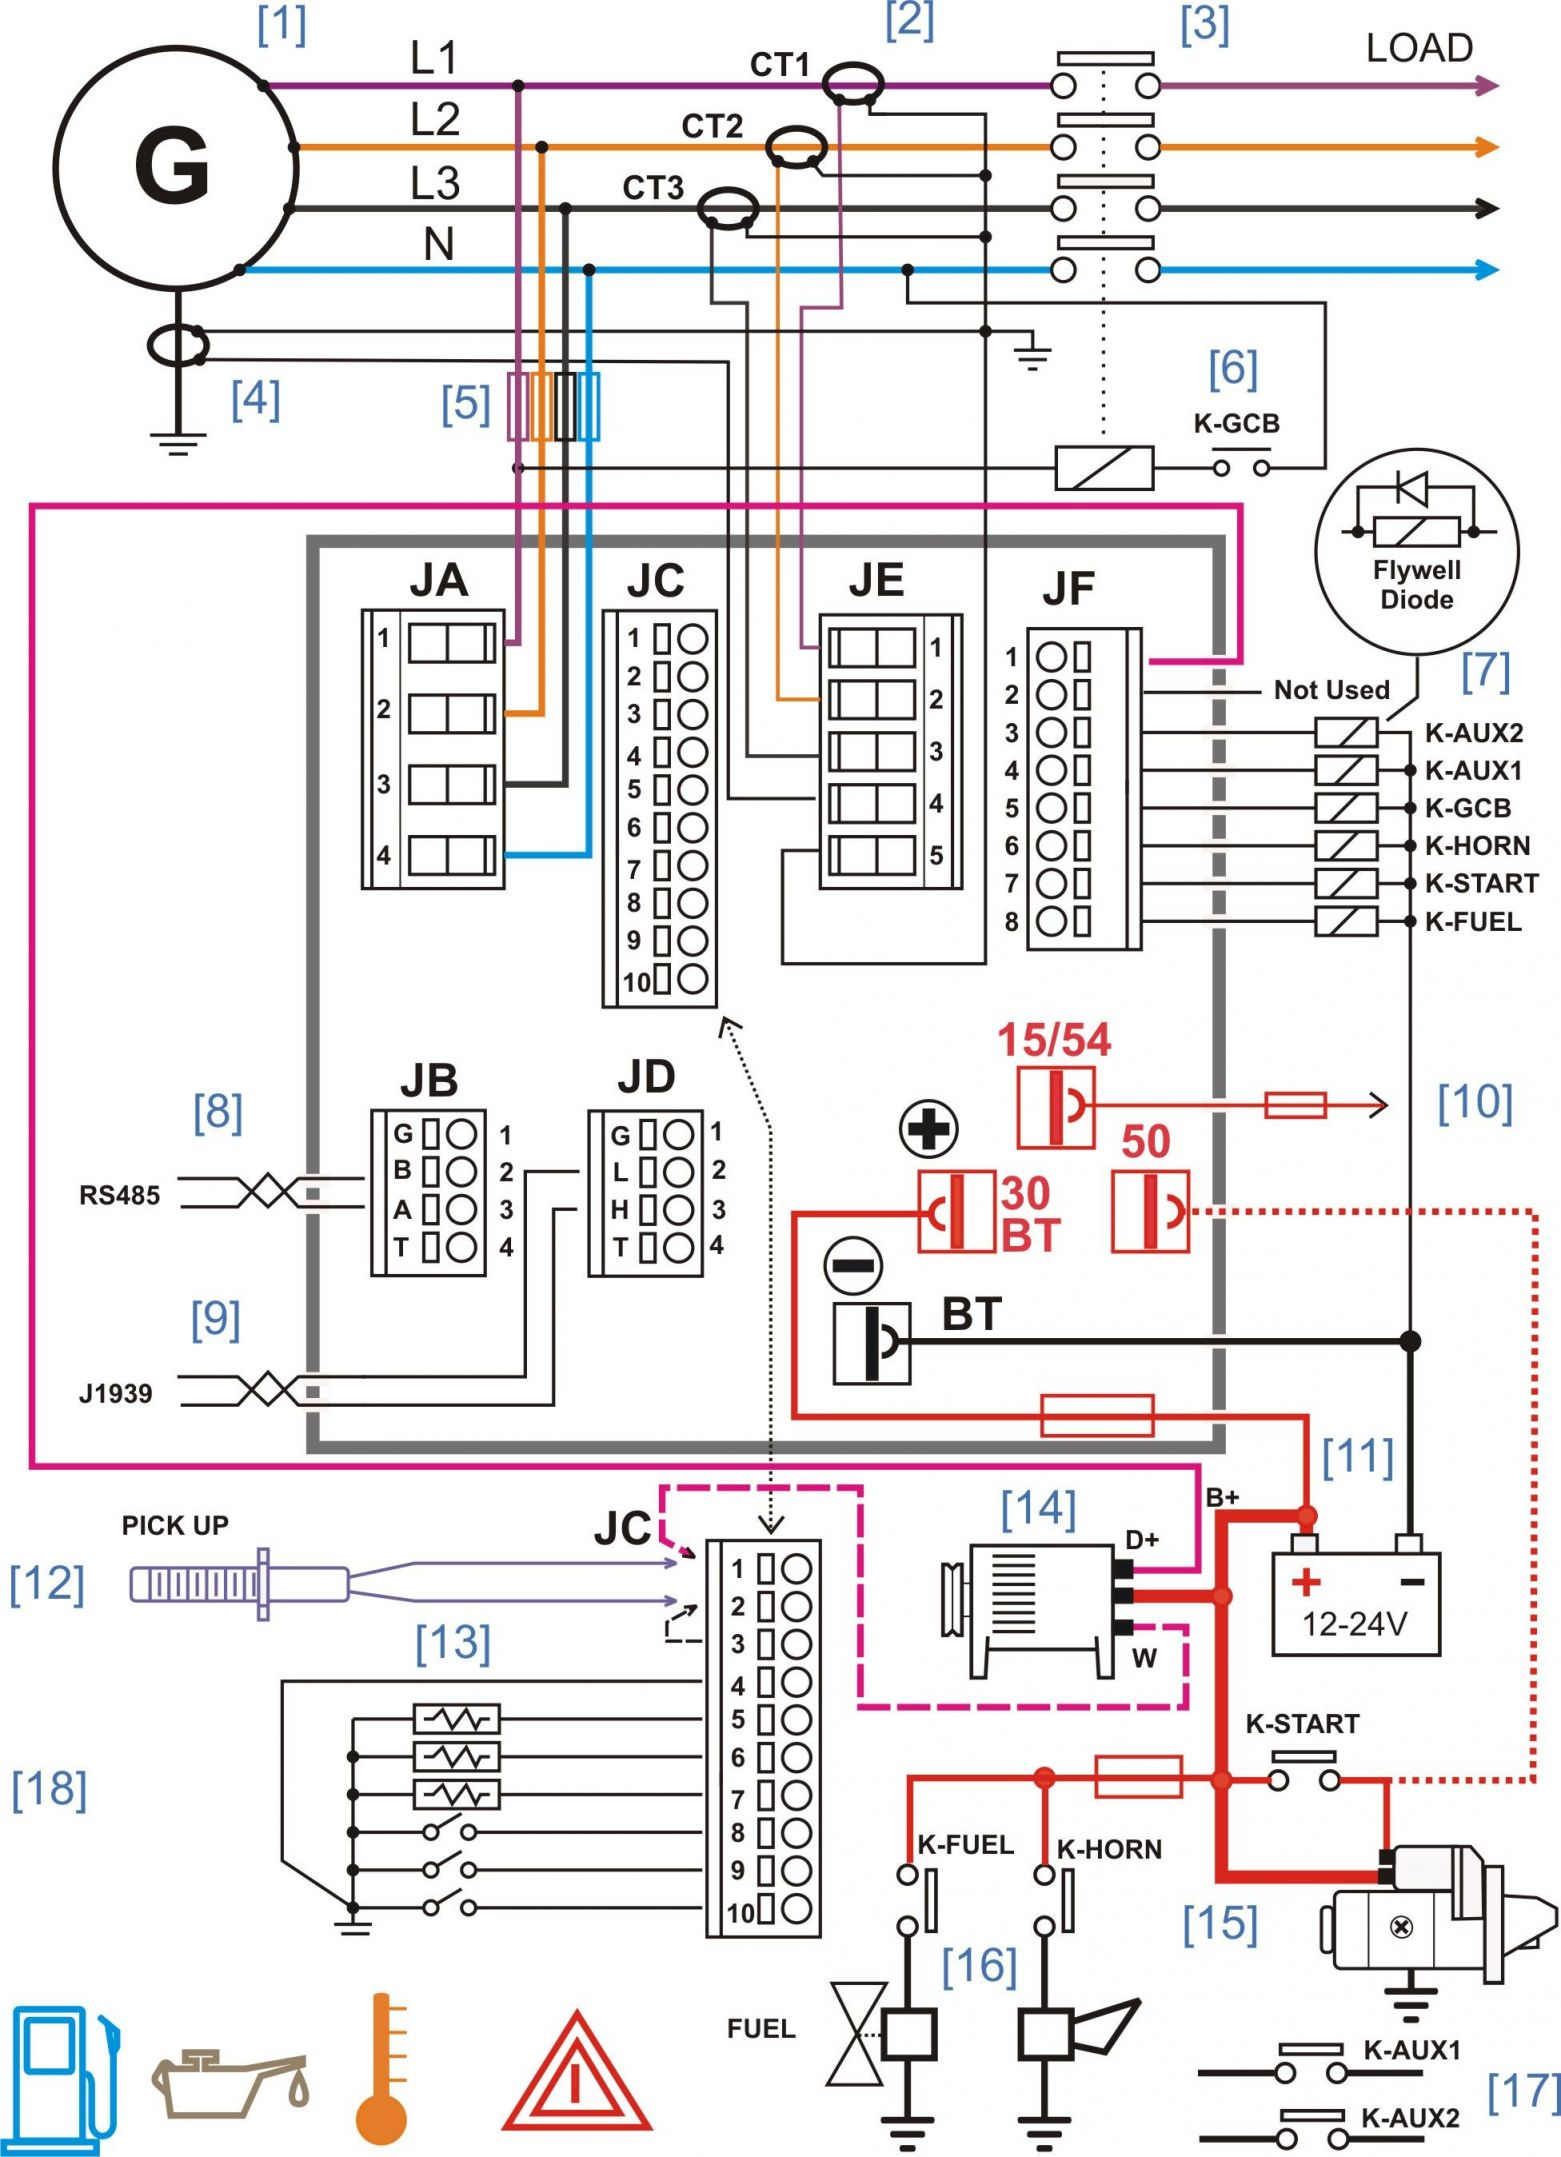 gallery of residential transfer switch wiring diagram sample. Black Bedroom Furniture Sets. Home Design Ideas